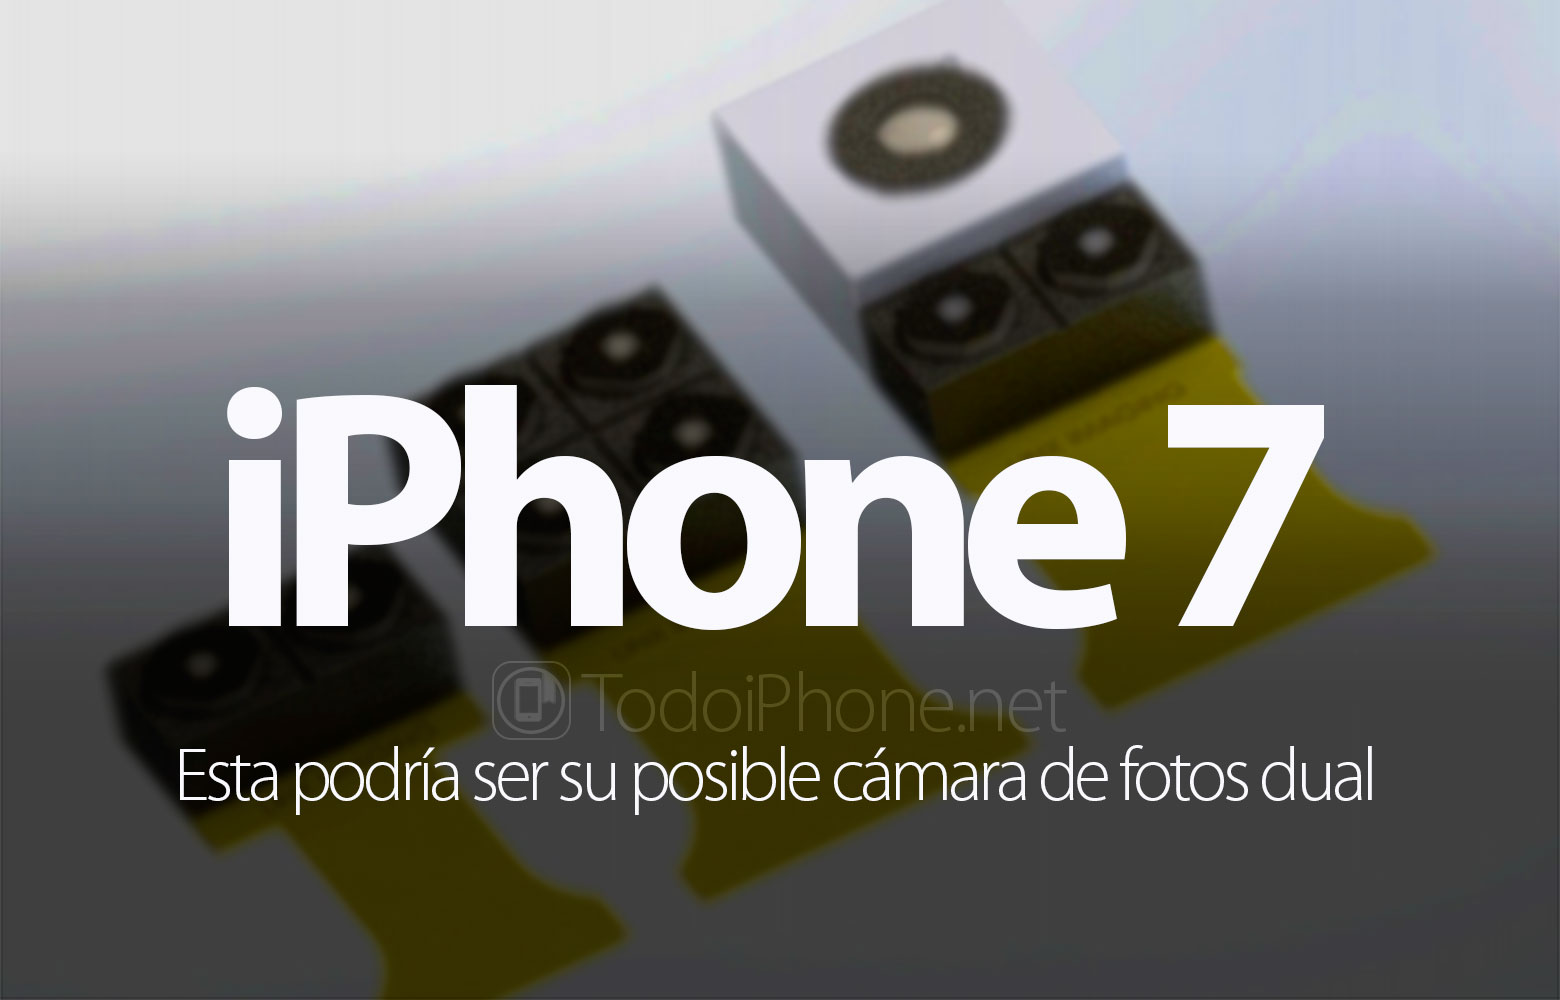 posible-camara-fotos-dual-iphone-7